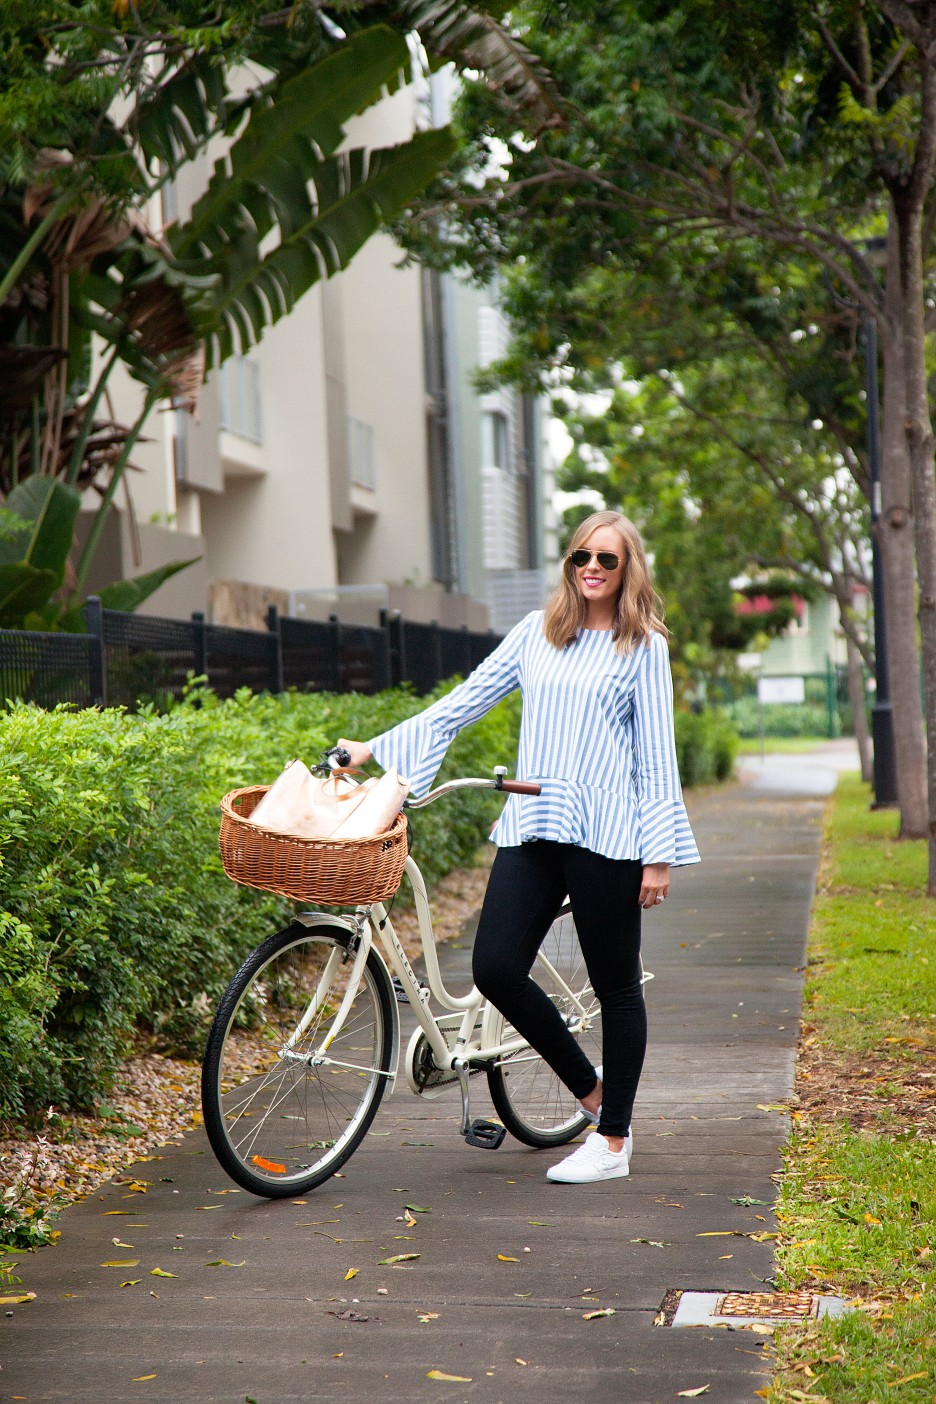 1 Stripe Top Black Jeans and White Converse Sneakers fashion blogger electra bike with basket rose gold tote handbag | One Striped Outfit, Two Ways featured by popular US fashion blogger, Style Elixir